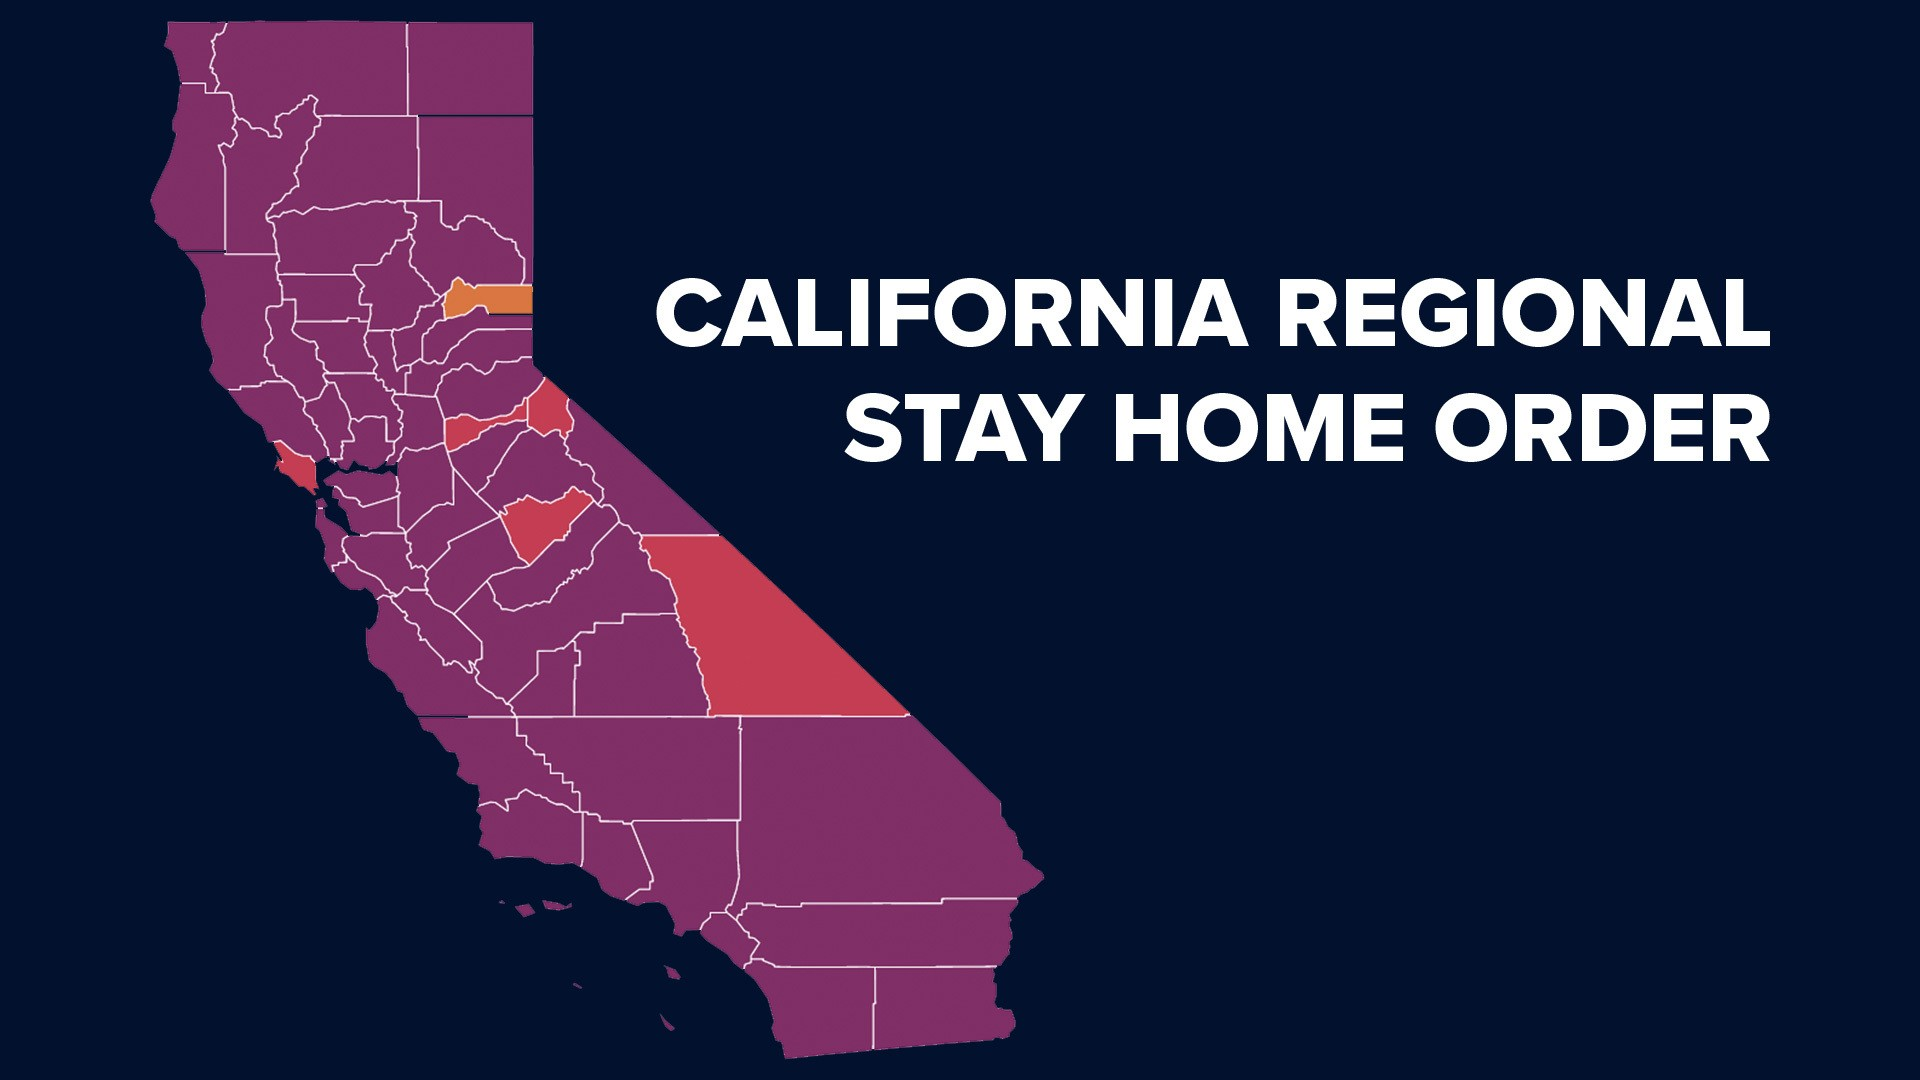 Gov Newsom Announces Regional Stay At Home Order Cbs8 Com